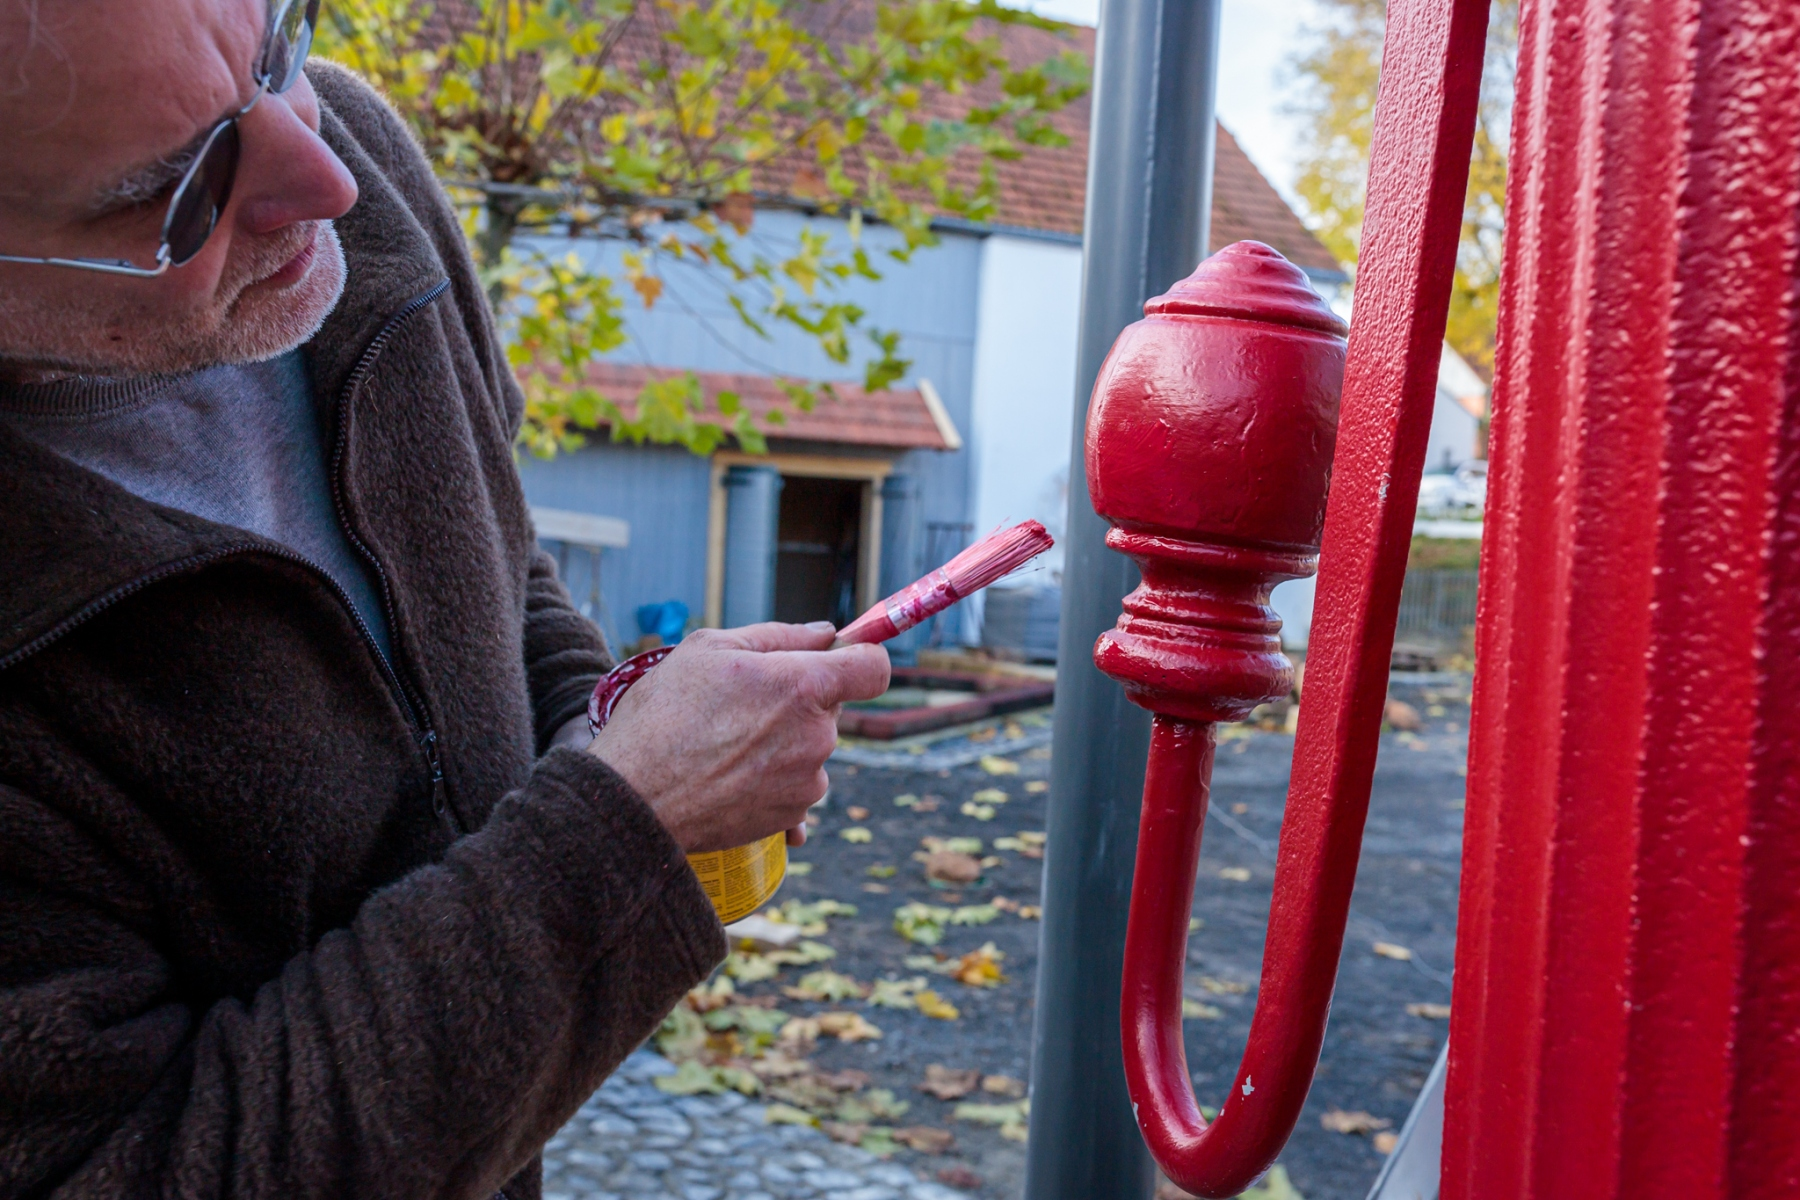 Pumpeninstallation am Mehrgenerationenplatz